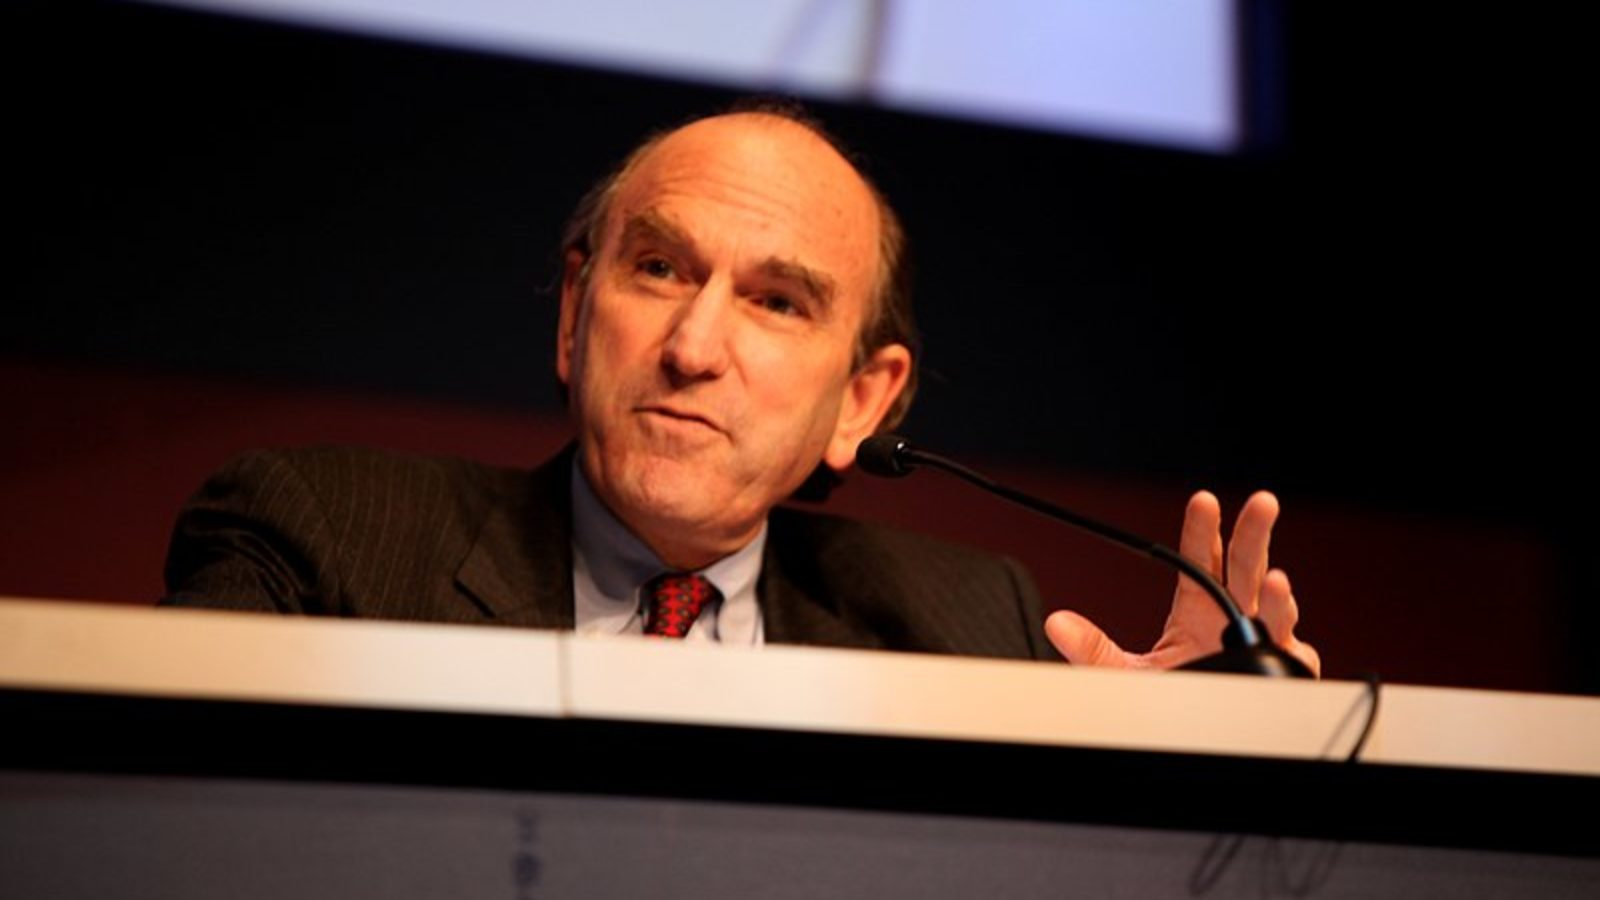 Elliot Abrams speaks into a microphone.